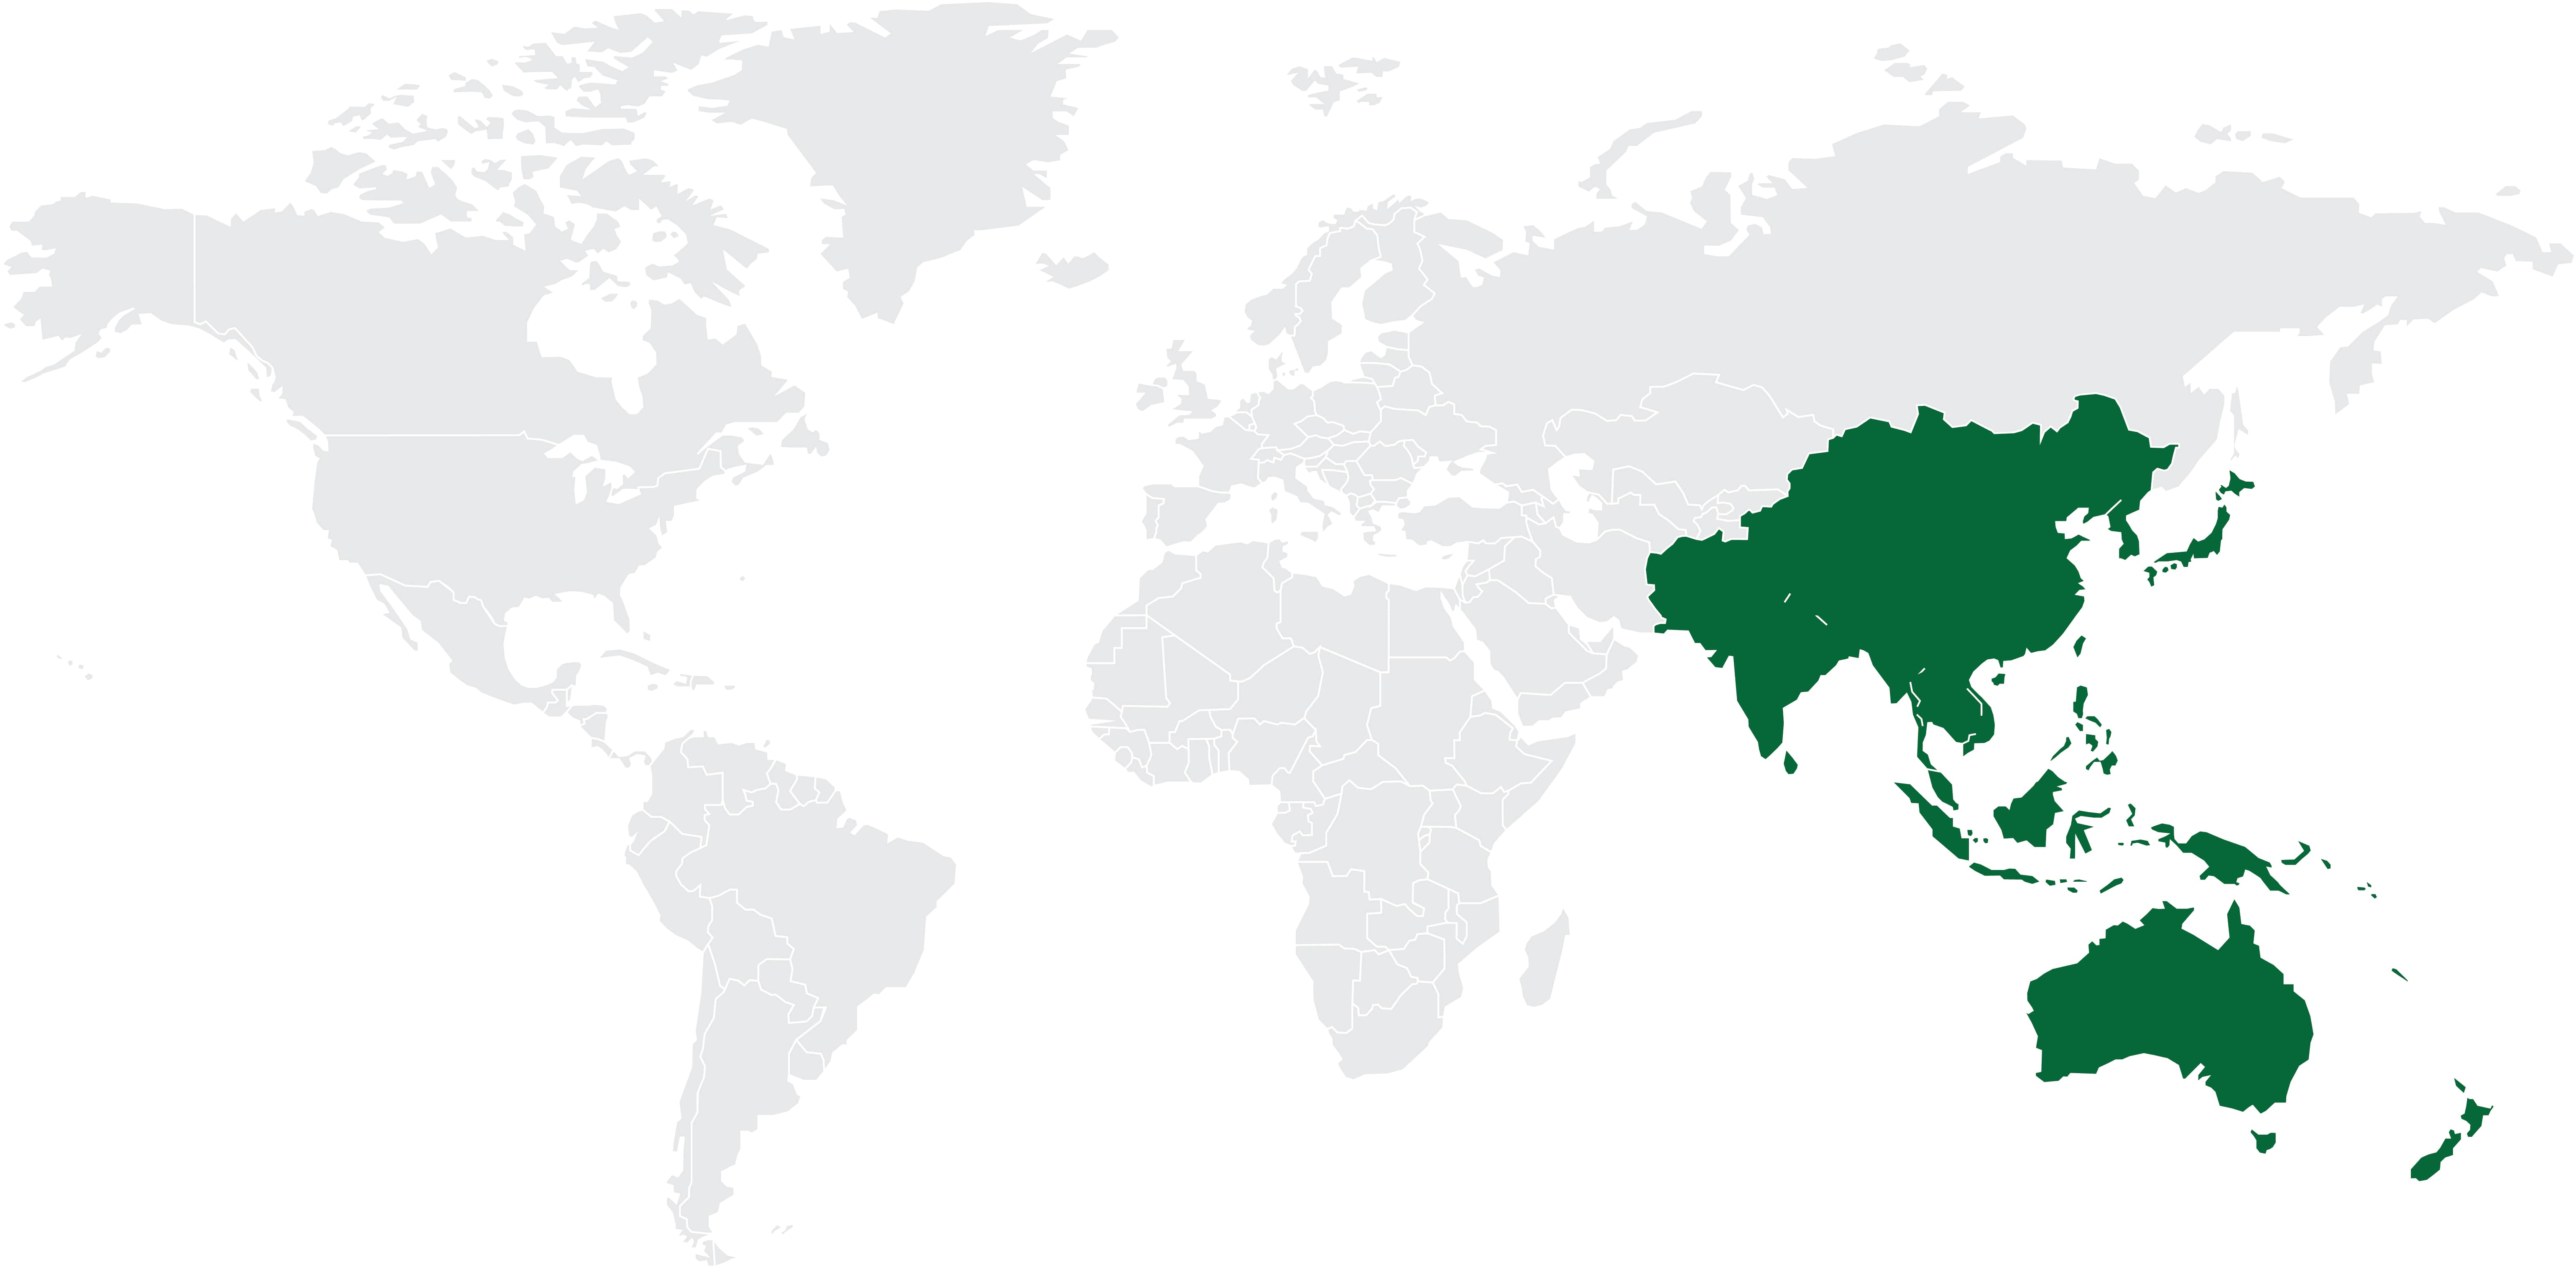 content/en-global/images/repository/resources/megatrends-in-asia-pacific-2020.jpg